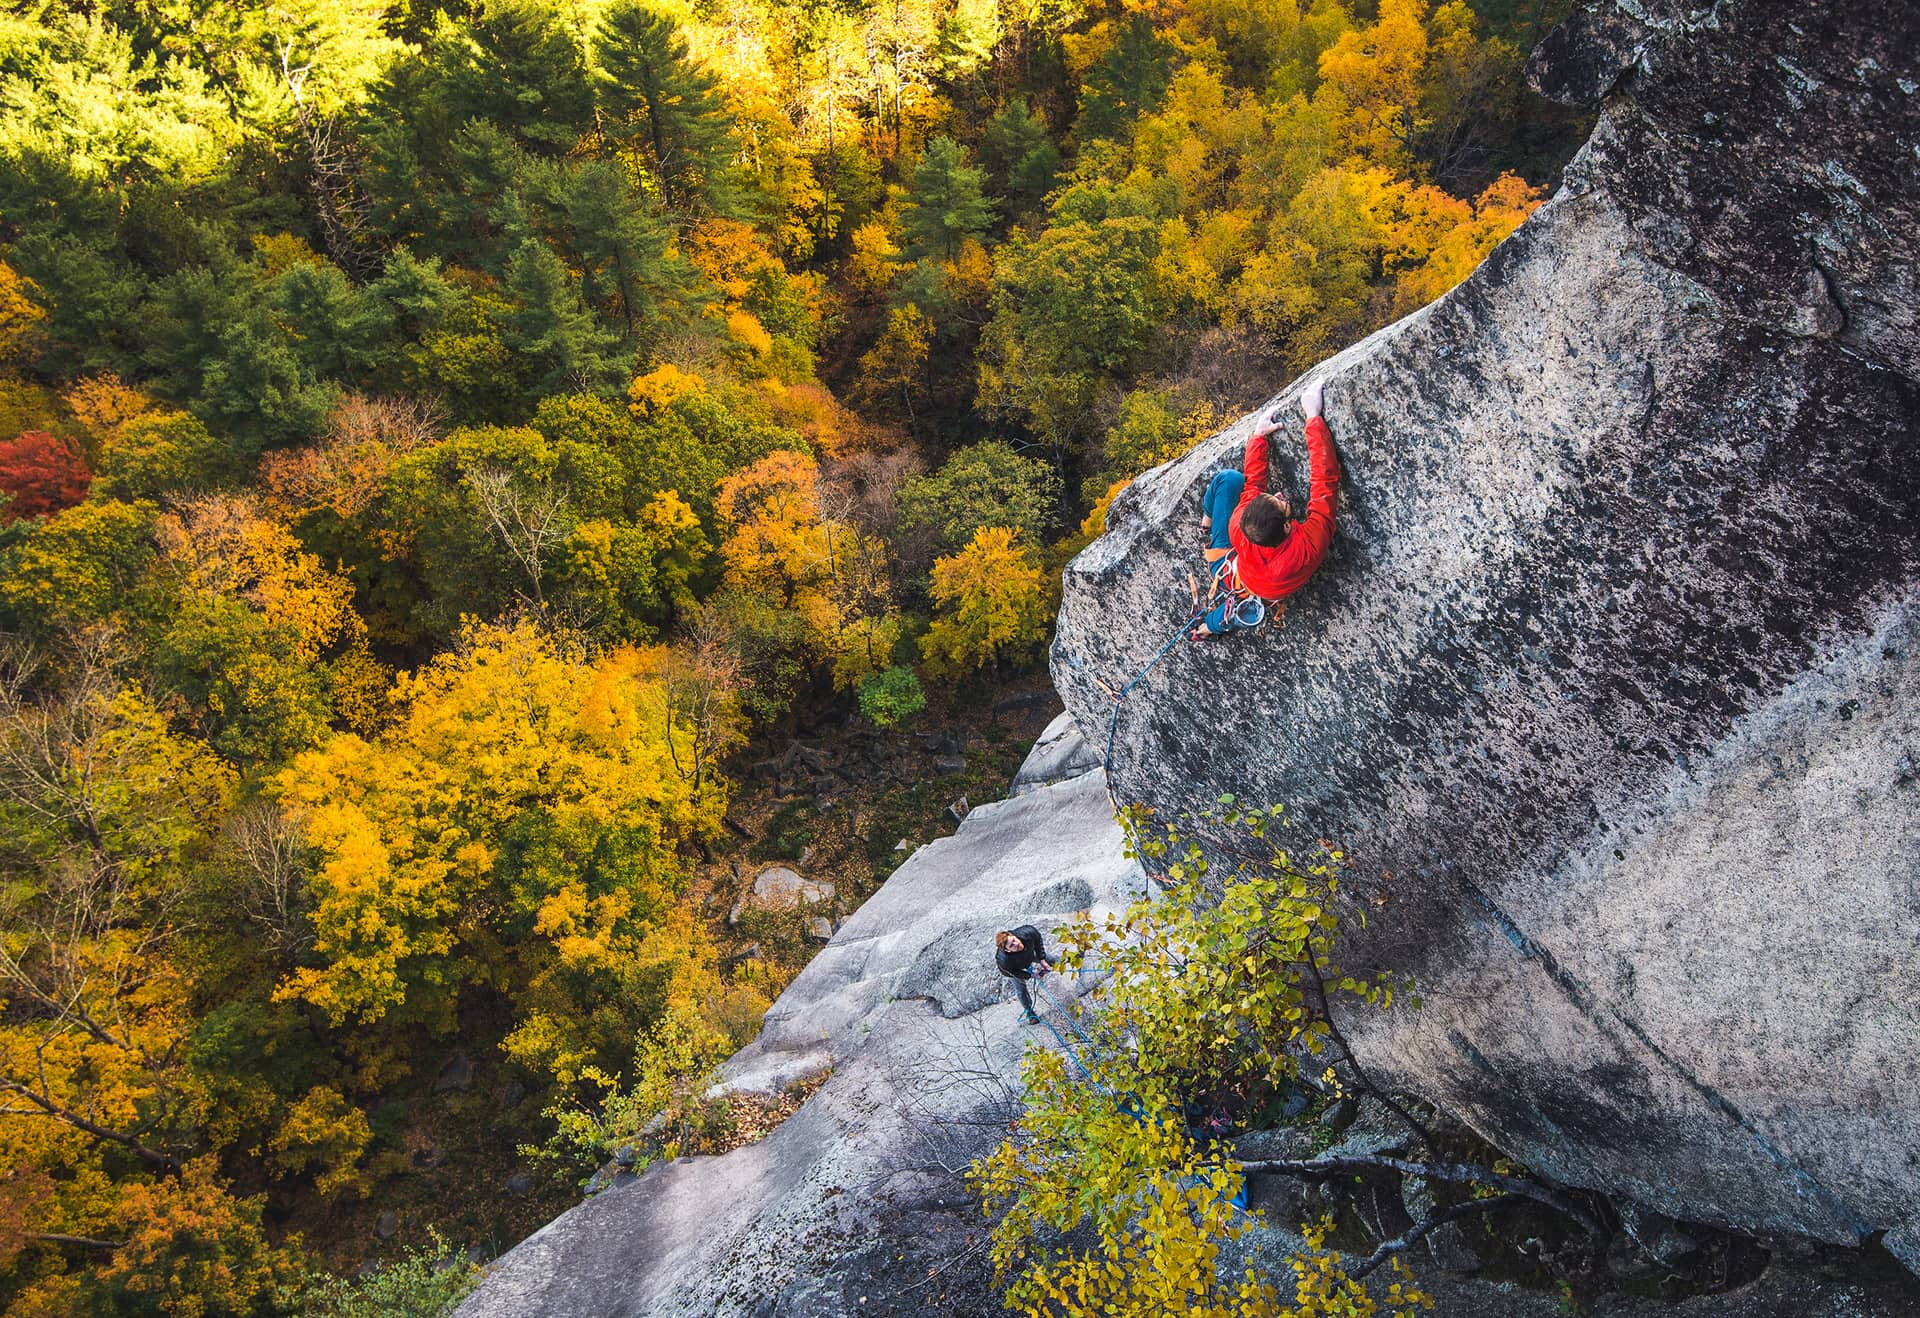 Life, The Universe and Everything: Jay Conway on the spectacular and difficult 5.13c fourth pitch of his new line on Cathedral Ledge. Photo: Brent Doscher.